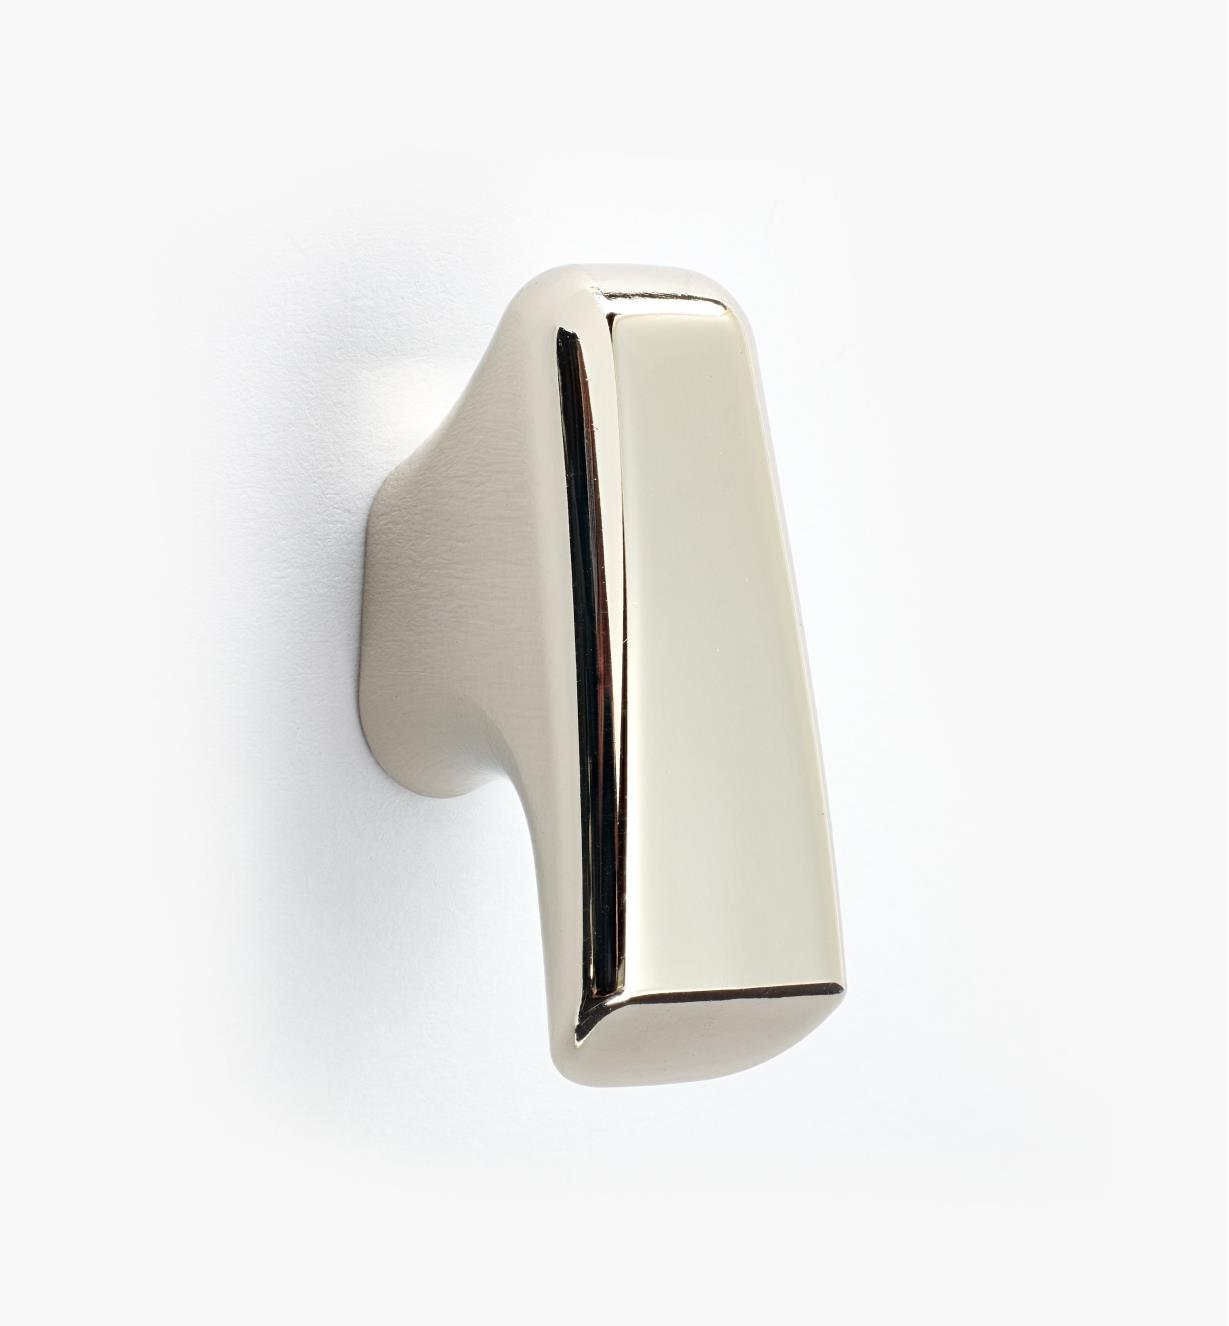 02W1470 - Wind 40mm Polished Nickel Finger Pull